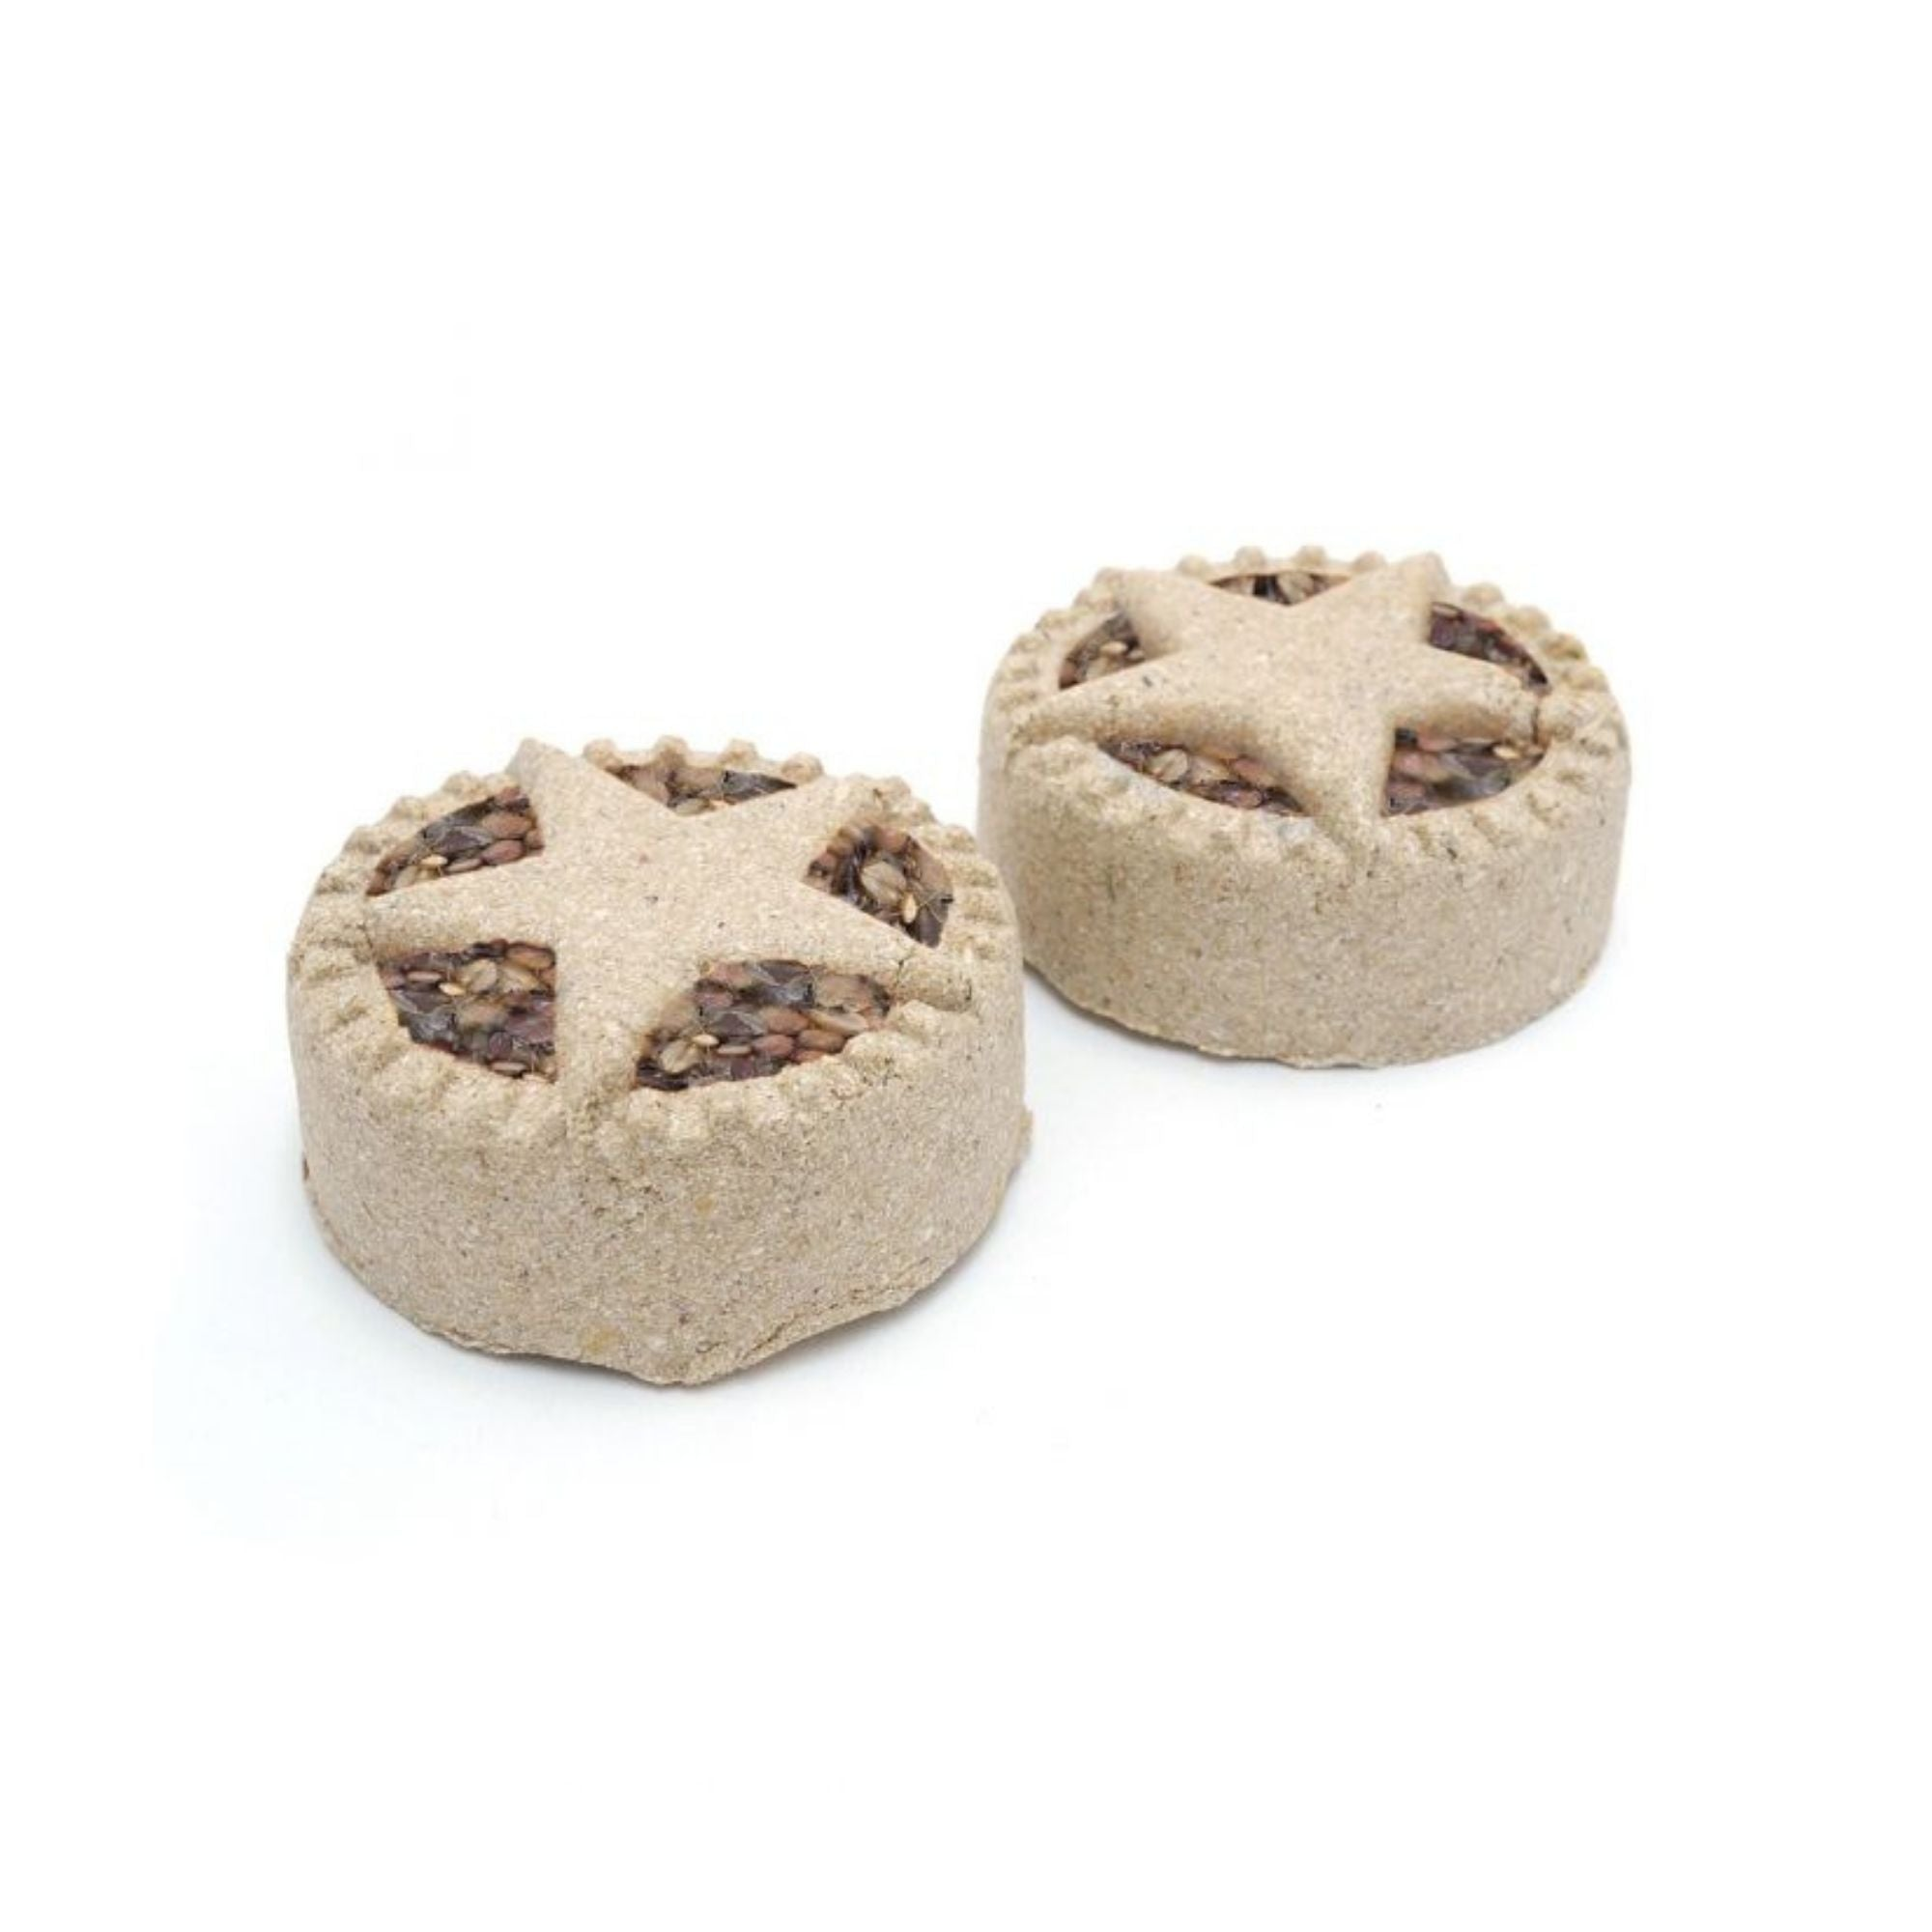 Rosewood Treat 'n' Gnaw Mince Pies Xmas Treats for Small Animals | Barks & Bunnies